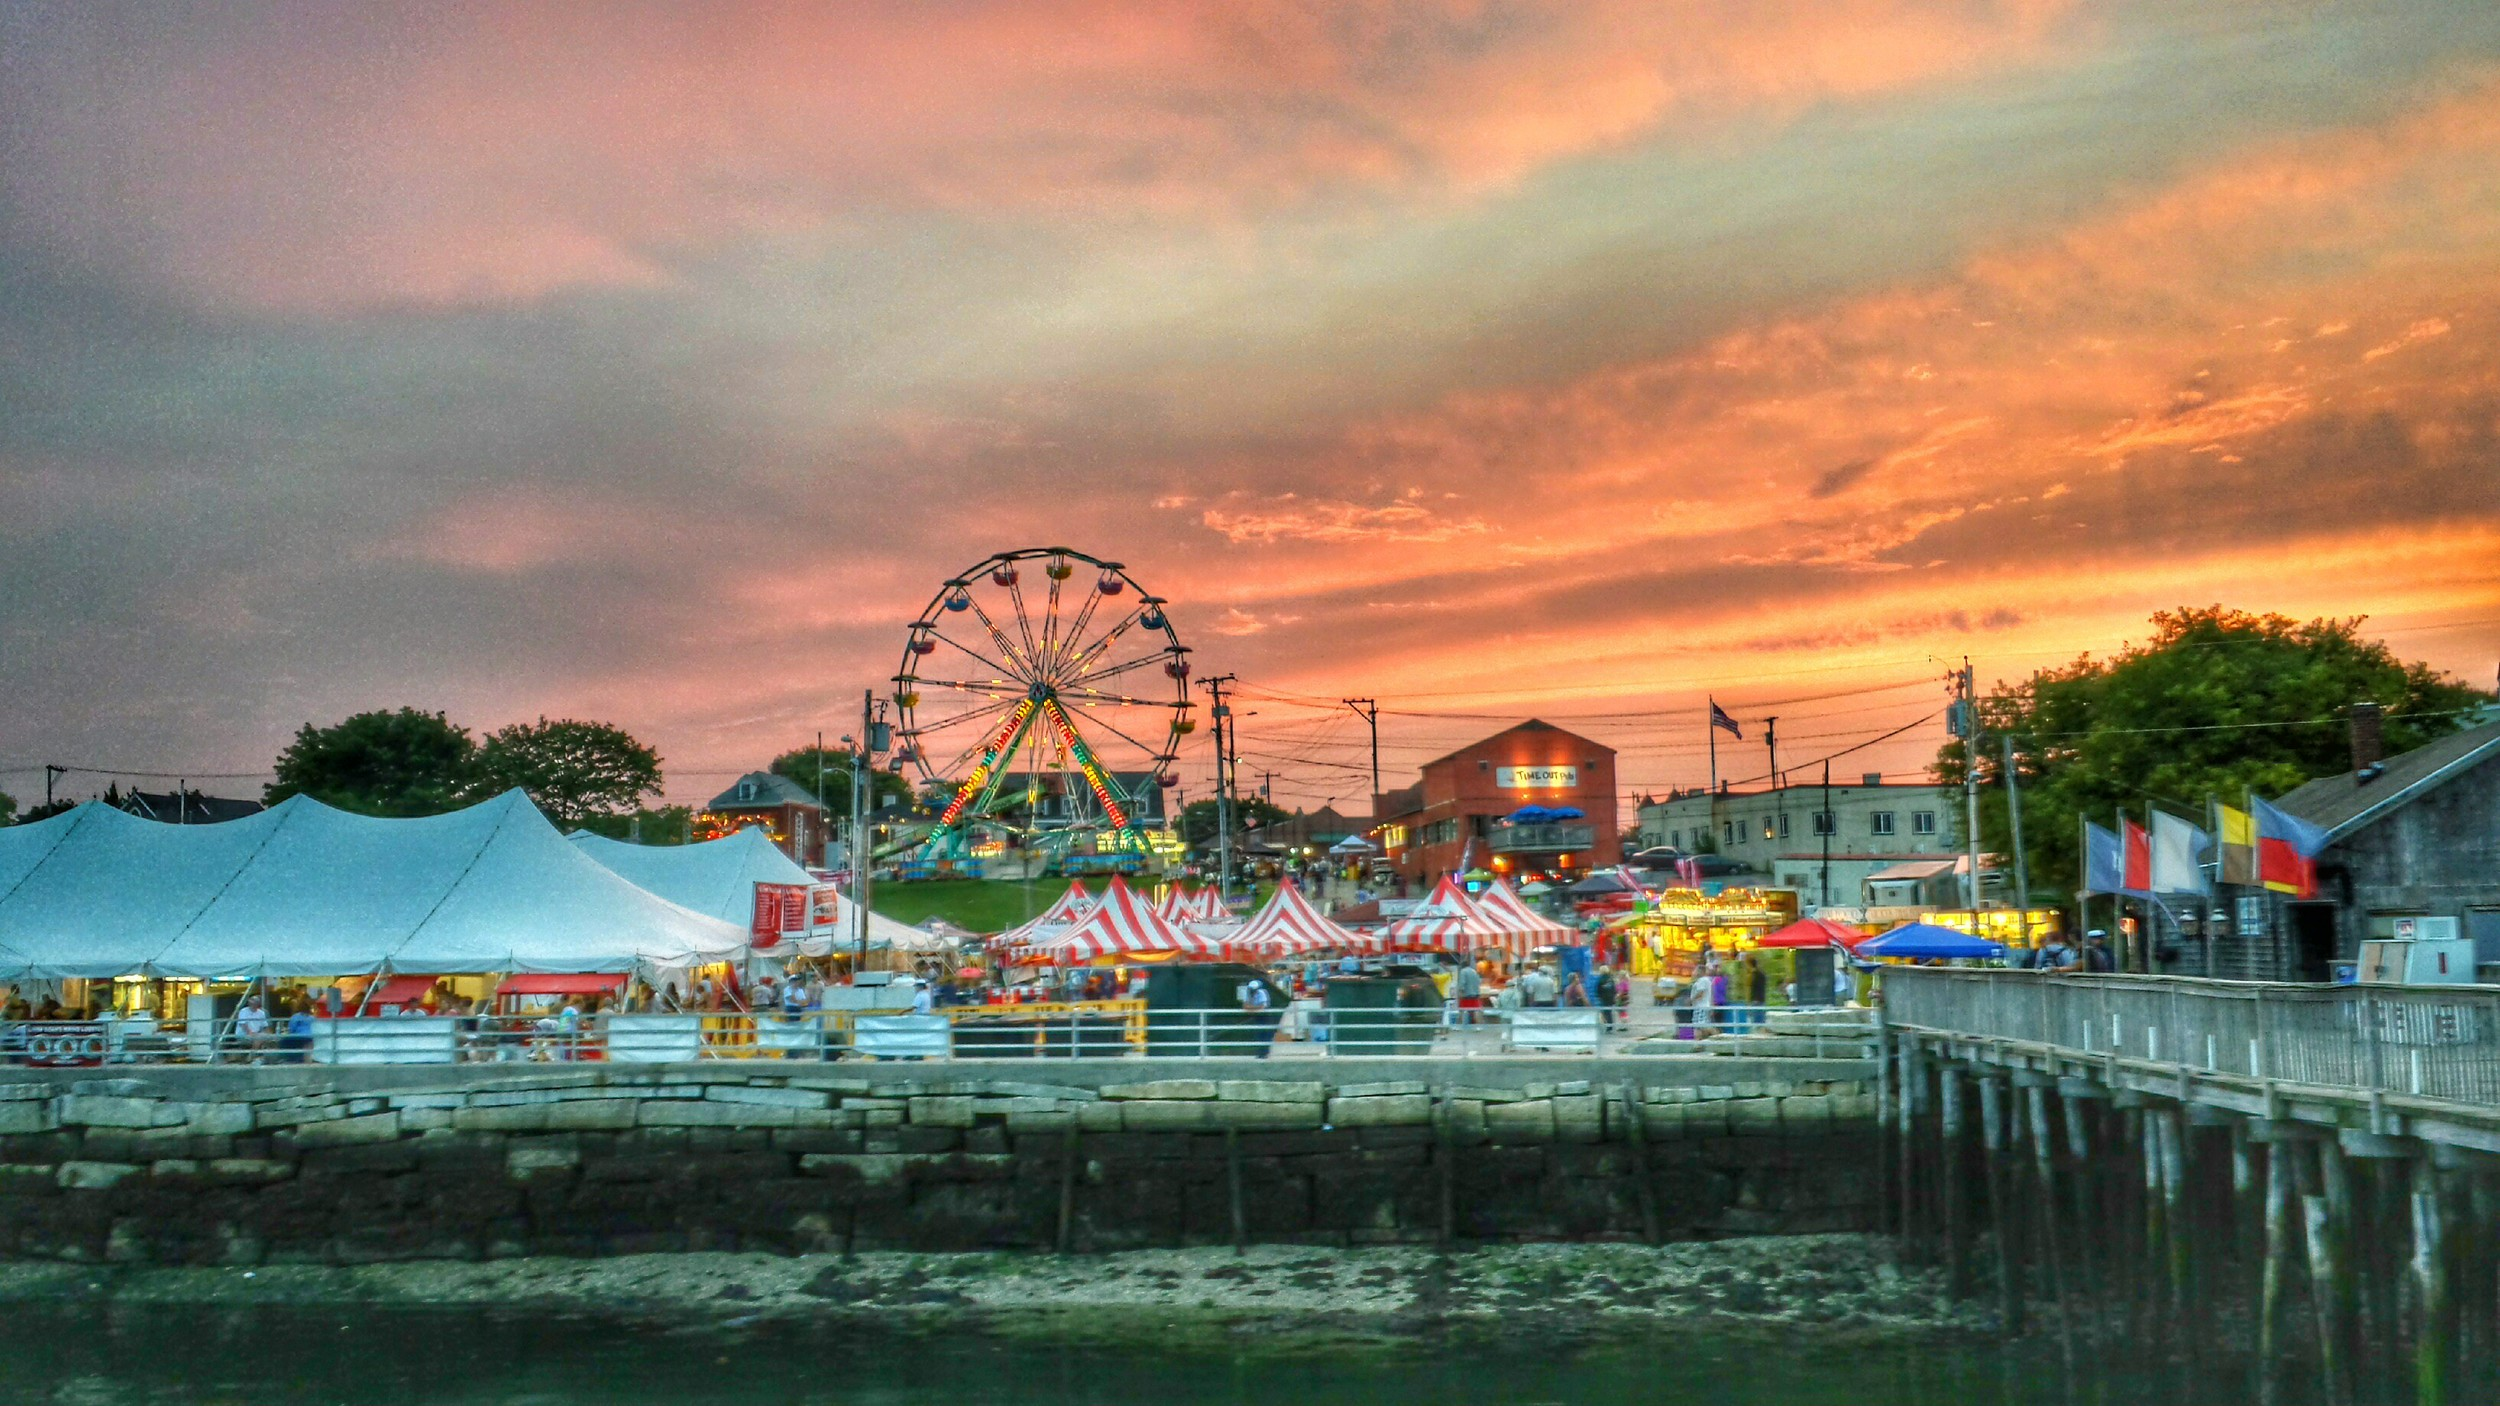 Maine Lobster Festival, Rockland